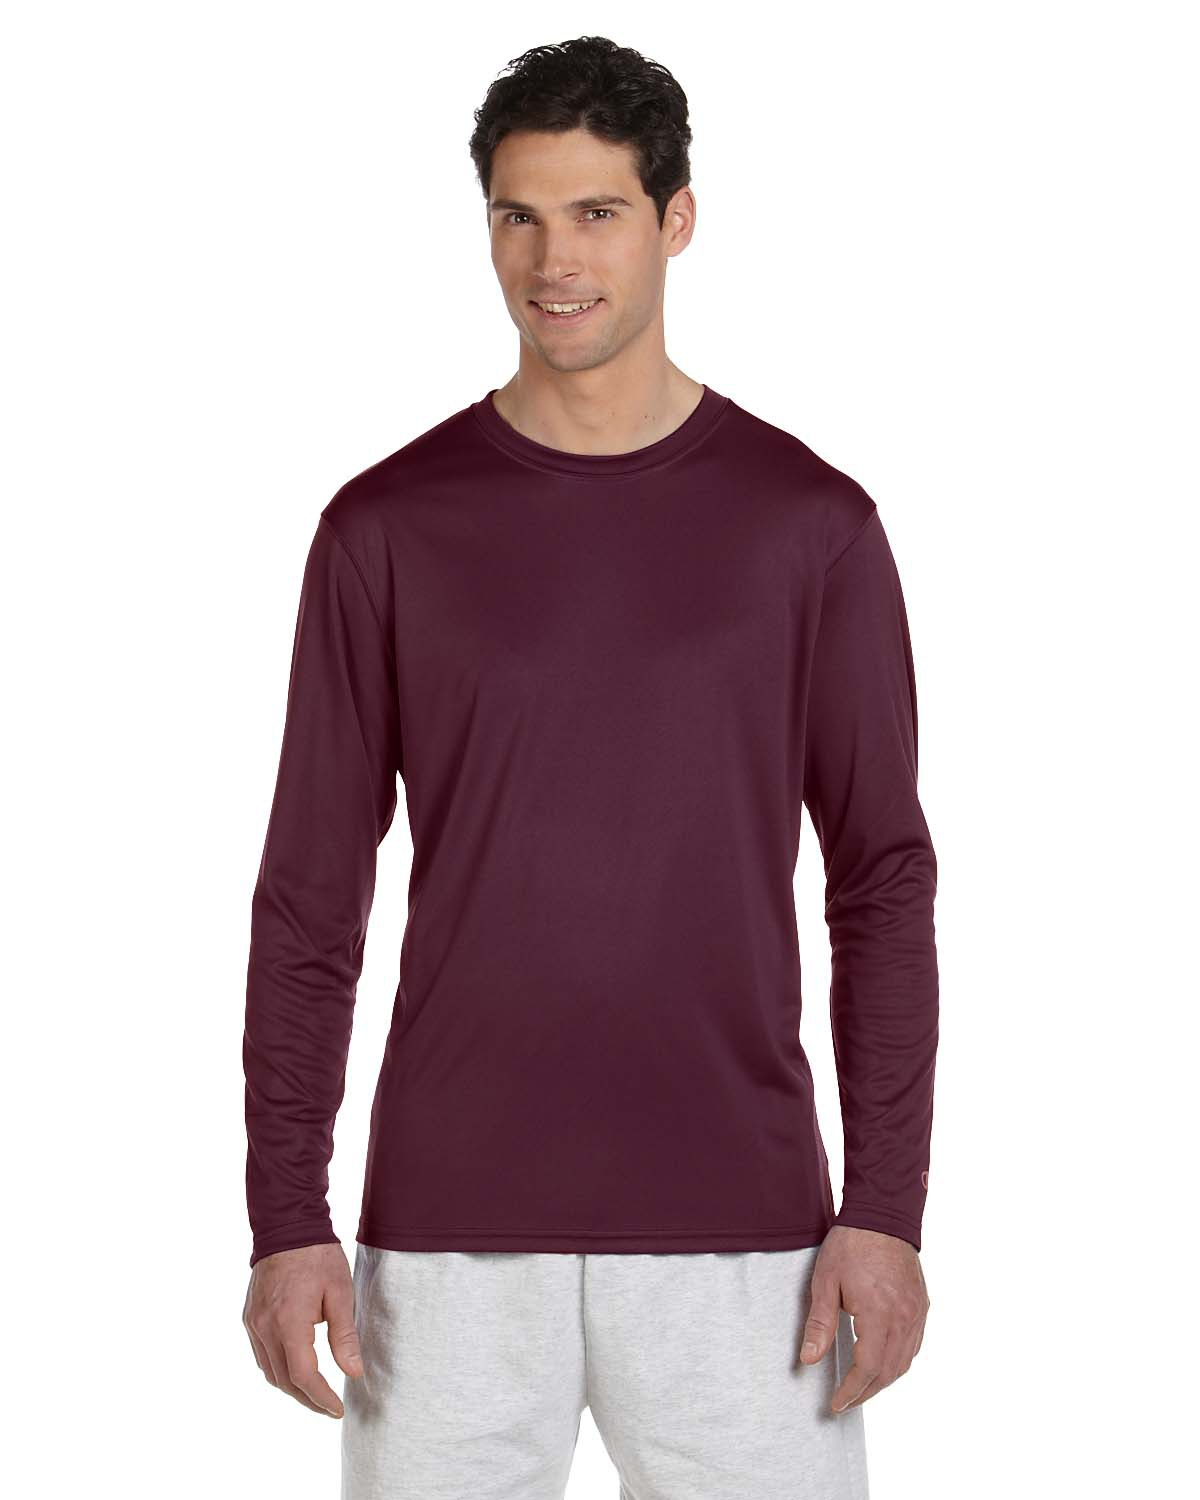 Champion CW26 - Double Dry Performance Long Sleeve T-Shirt